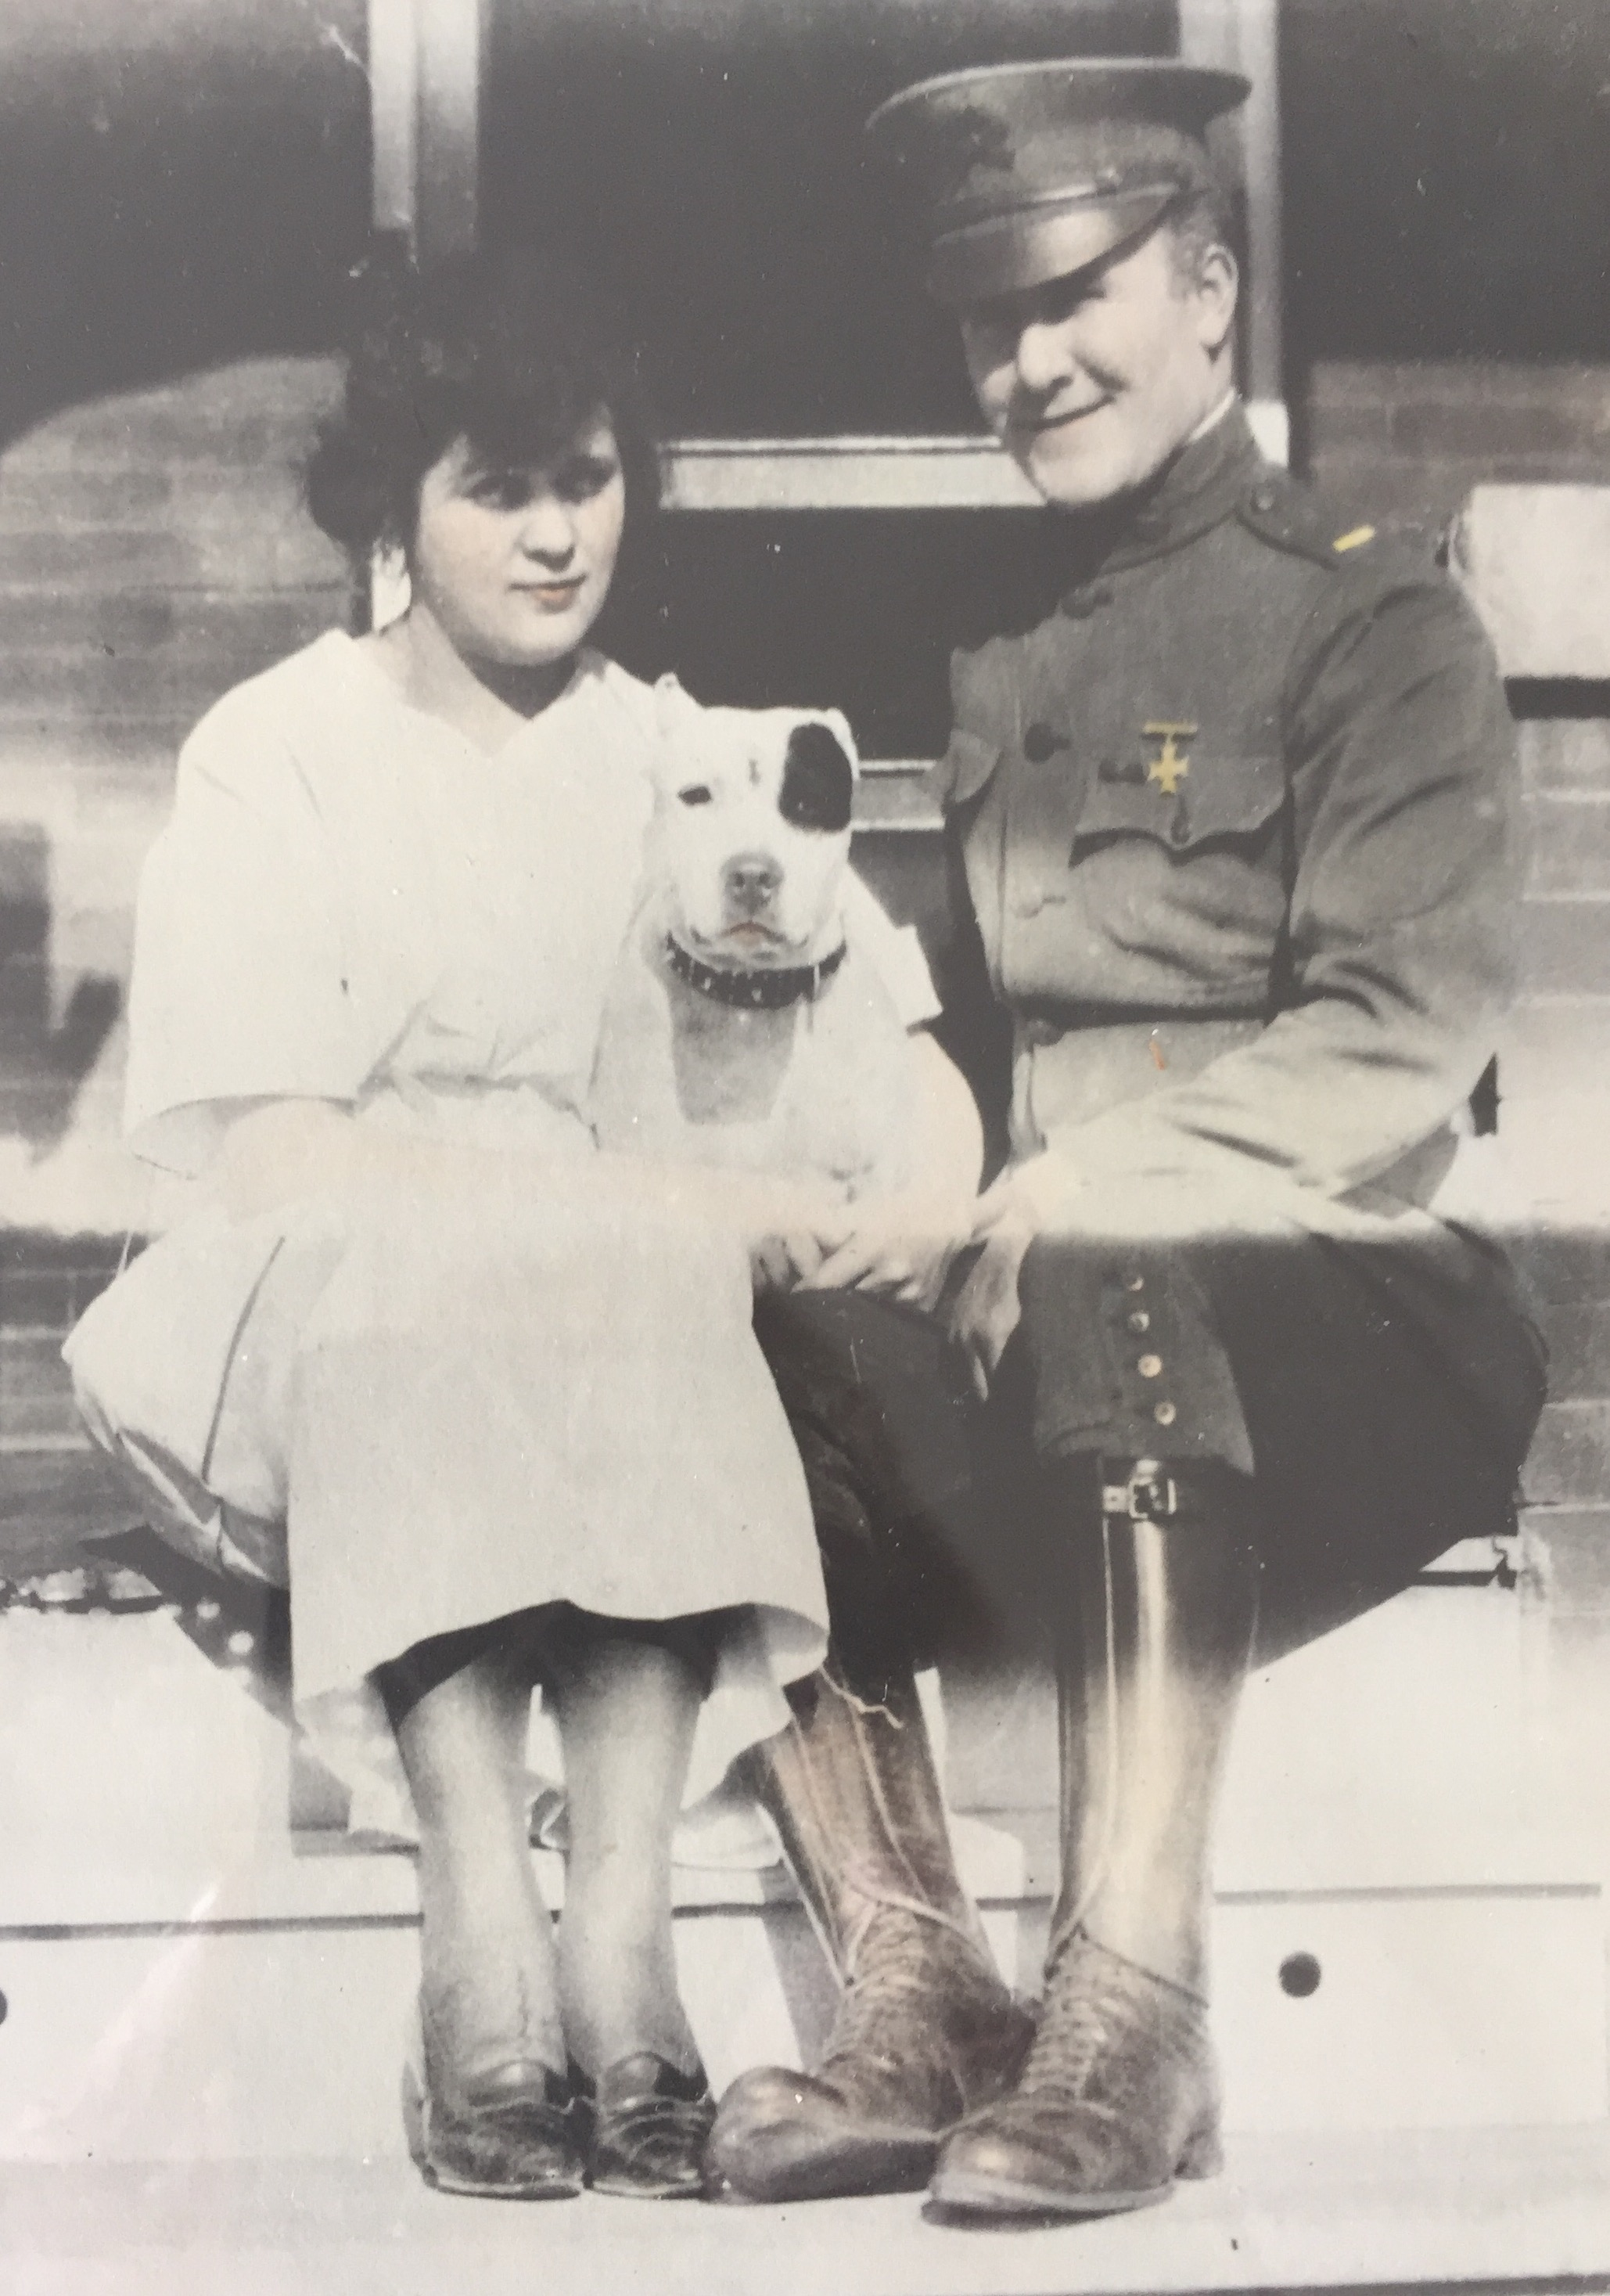 Margaret Gessing and Joe Bona in his World War One uniform sit with a dog between them.